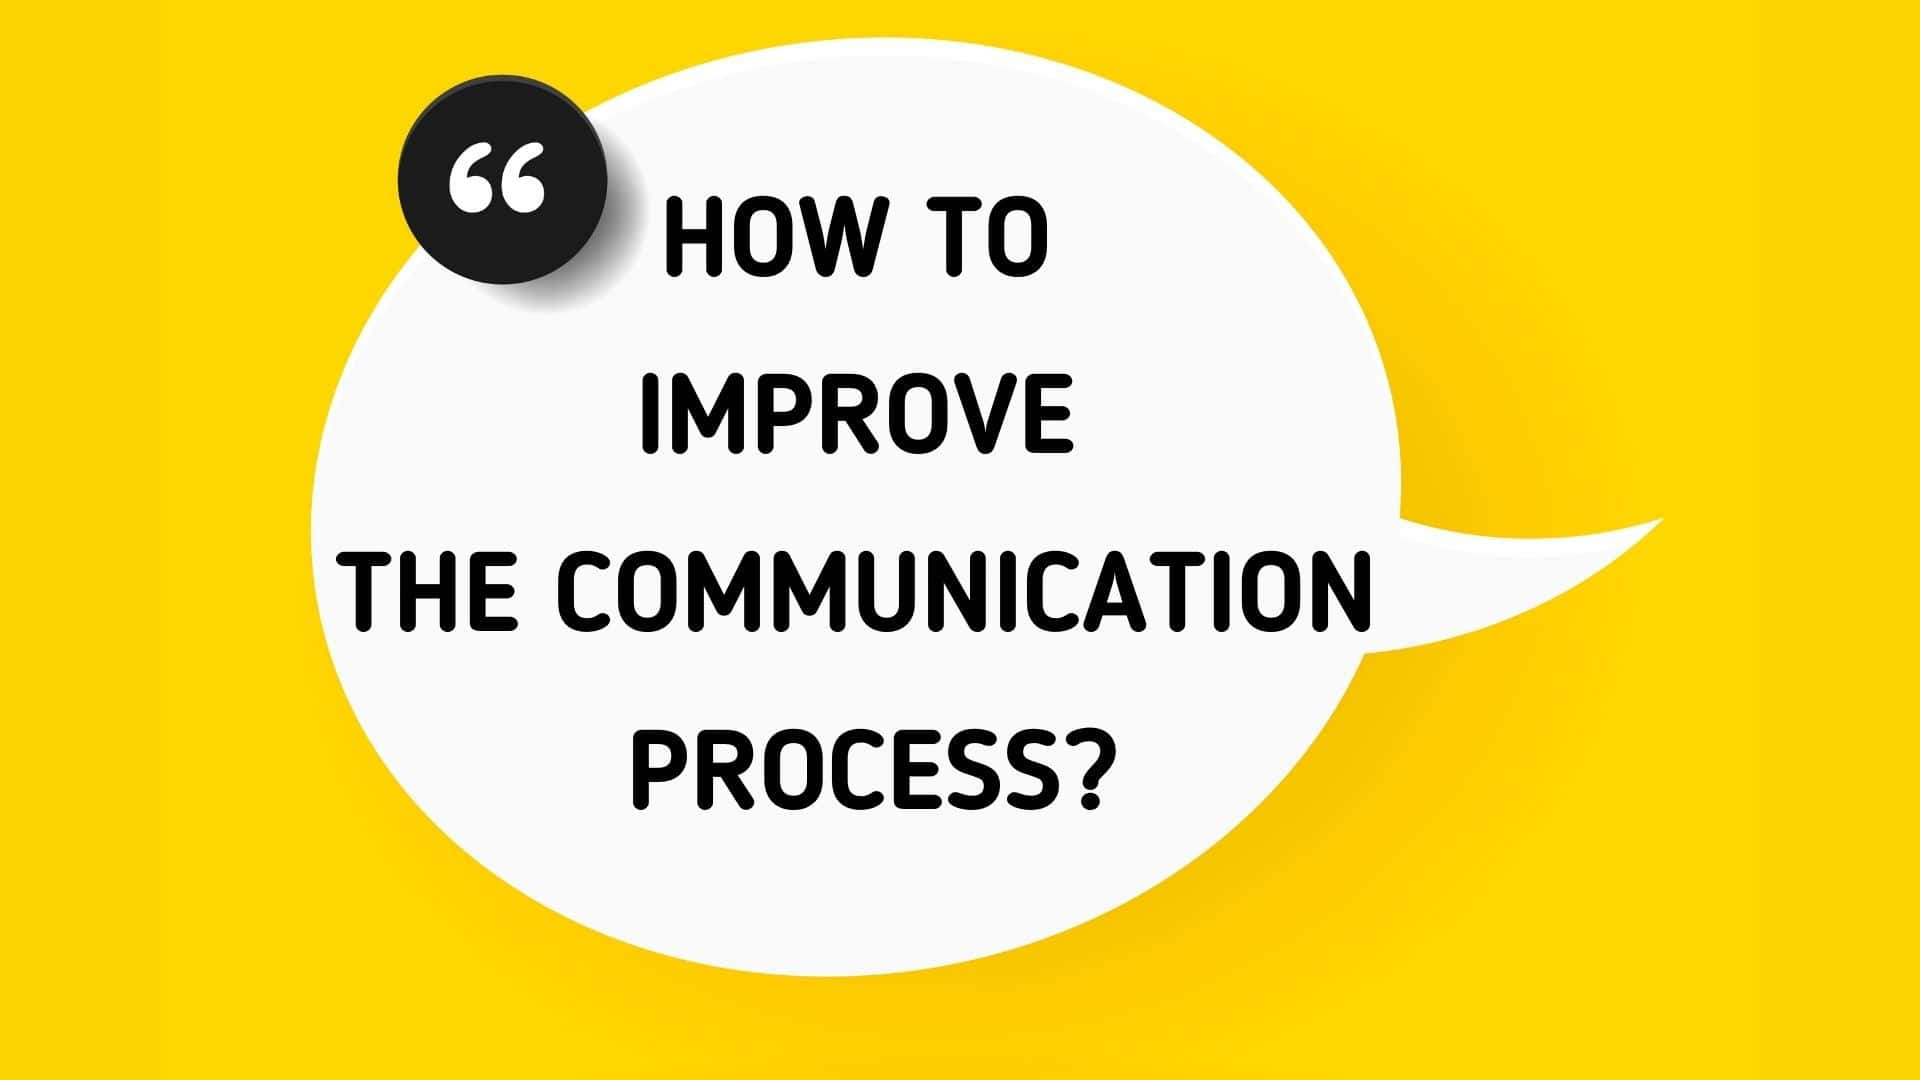 How to improve the Communication Process